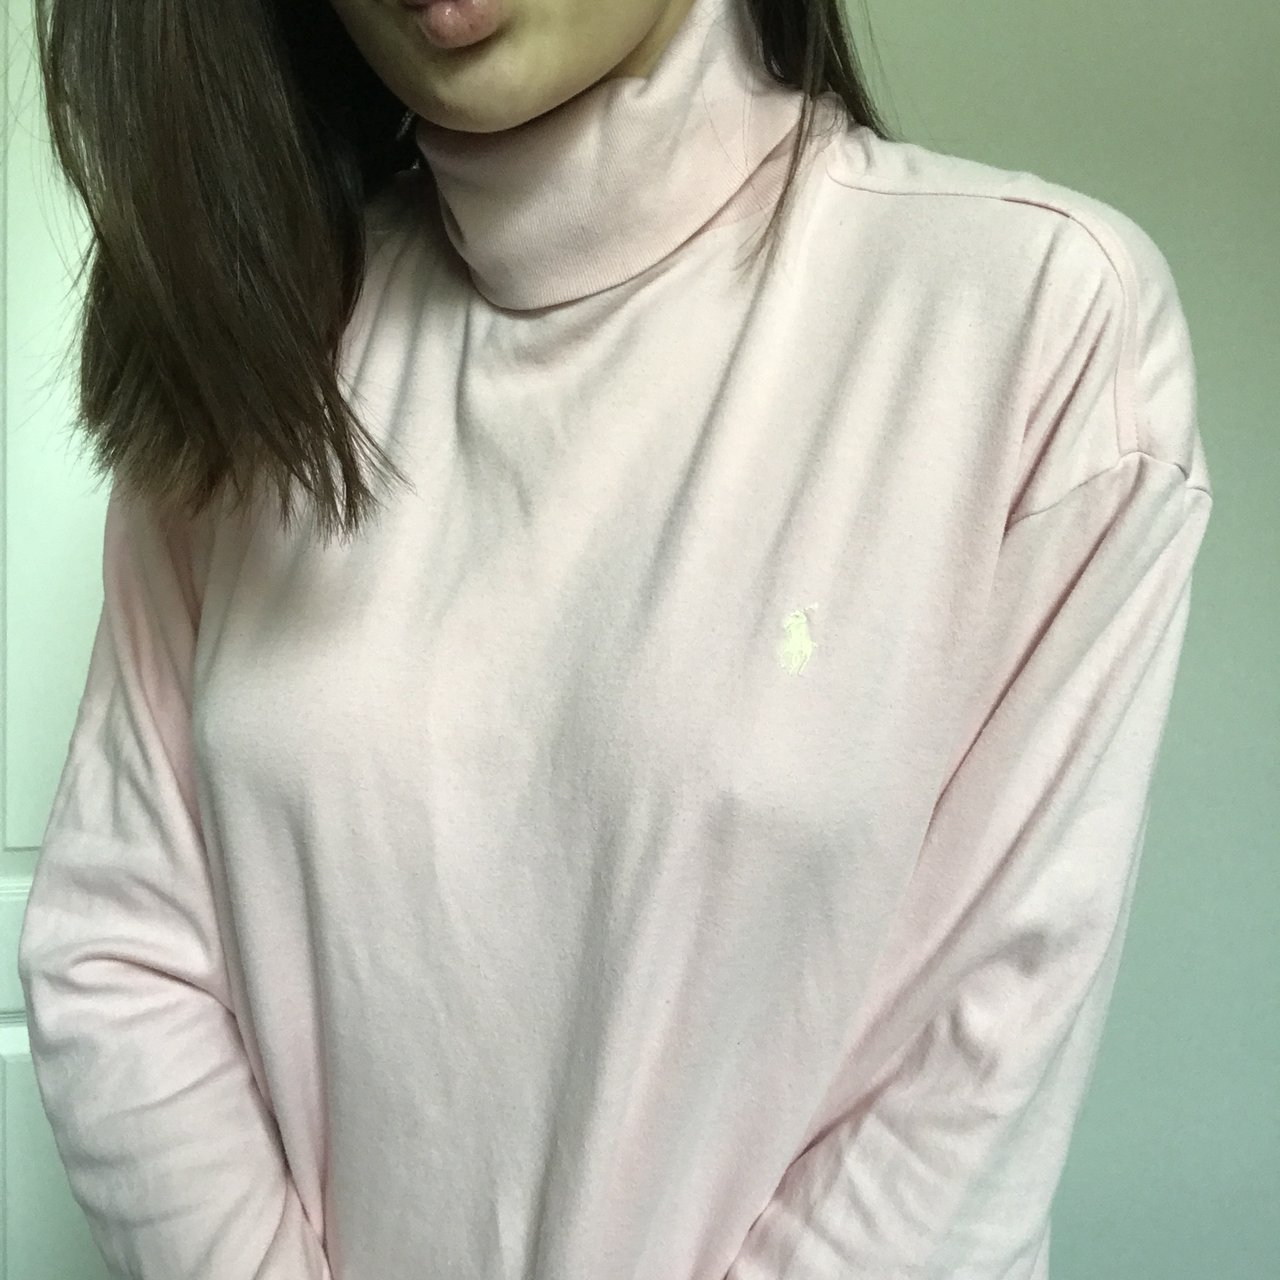 531211e2c20 @didibox. 3 days ago. Katy, United States. LIGHT BABY PINK POLO RALPH LAUREN  TURTLE NECK LONG SLEEVE TOP